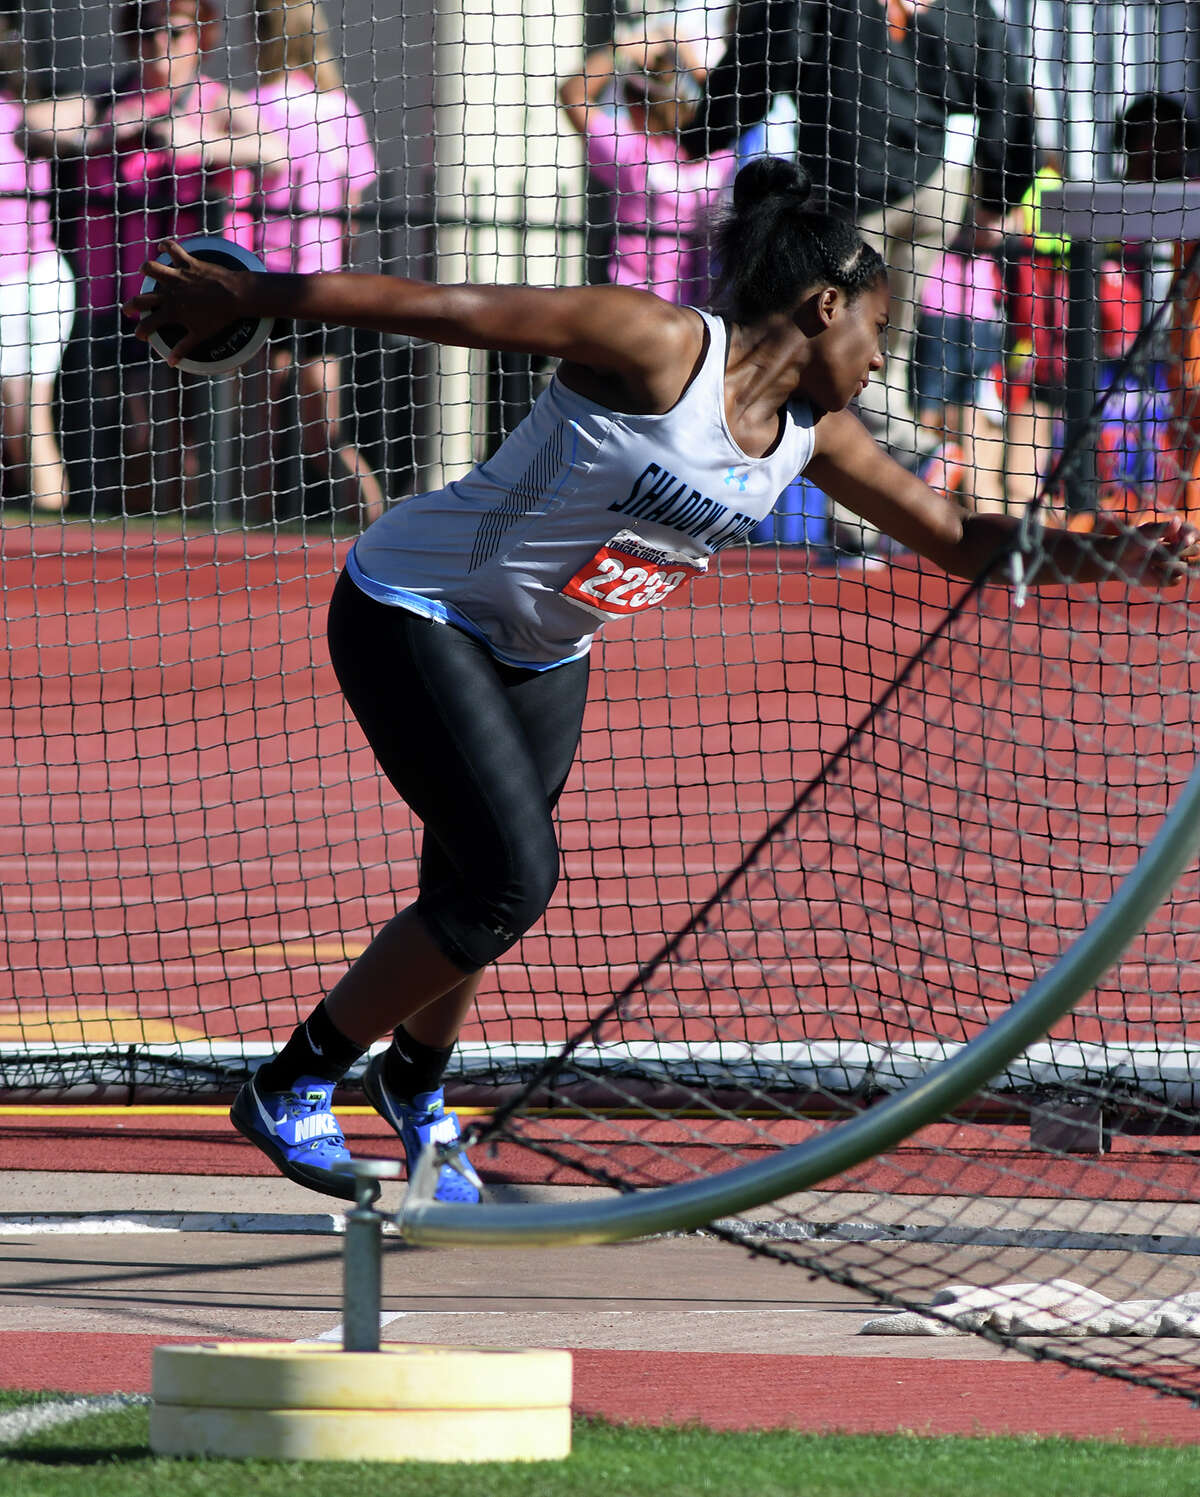 Alvin Shawdow Creek junior Hailey Pollard competes in the Class 5A Girls Discus at the UIL Track & Field State Championships at Mike A. Myers Stadium on the campus of the University of Texas at Austin in Austin on Friday, May 12, 2017. (Photo by Jerry Baker/Freelance)